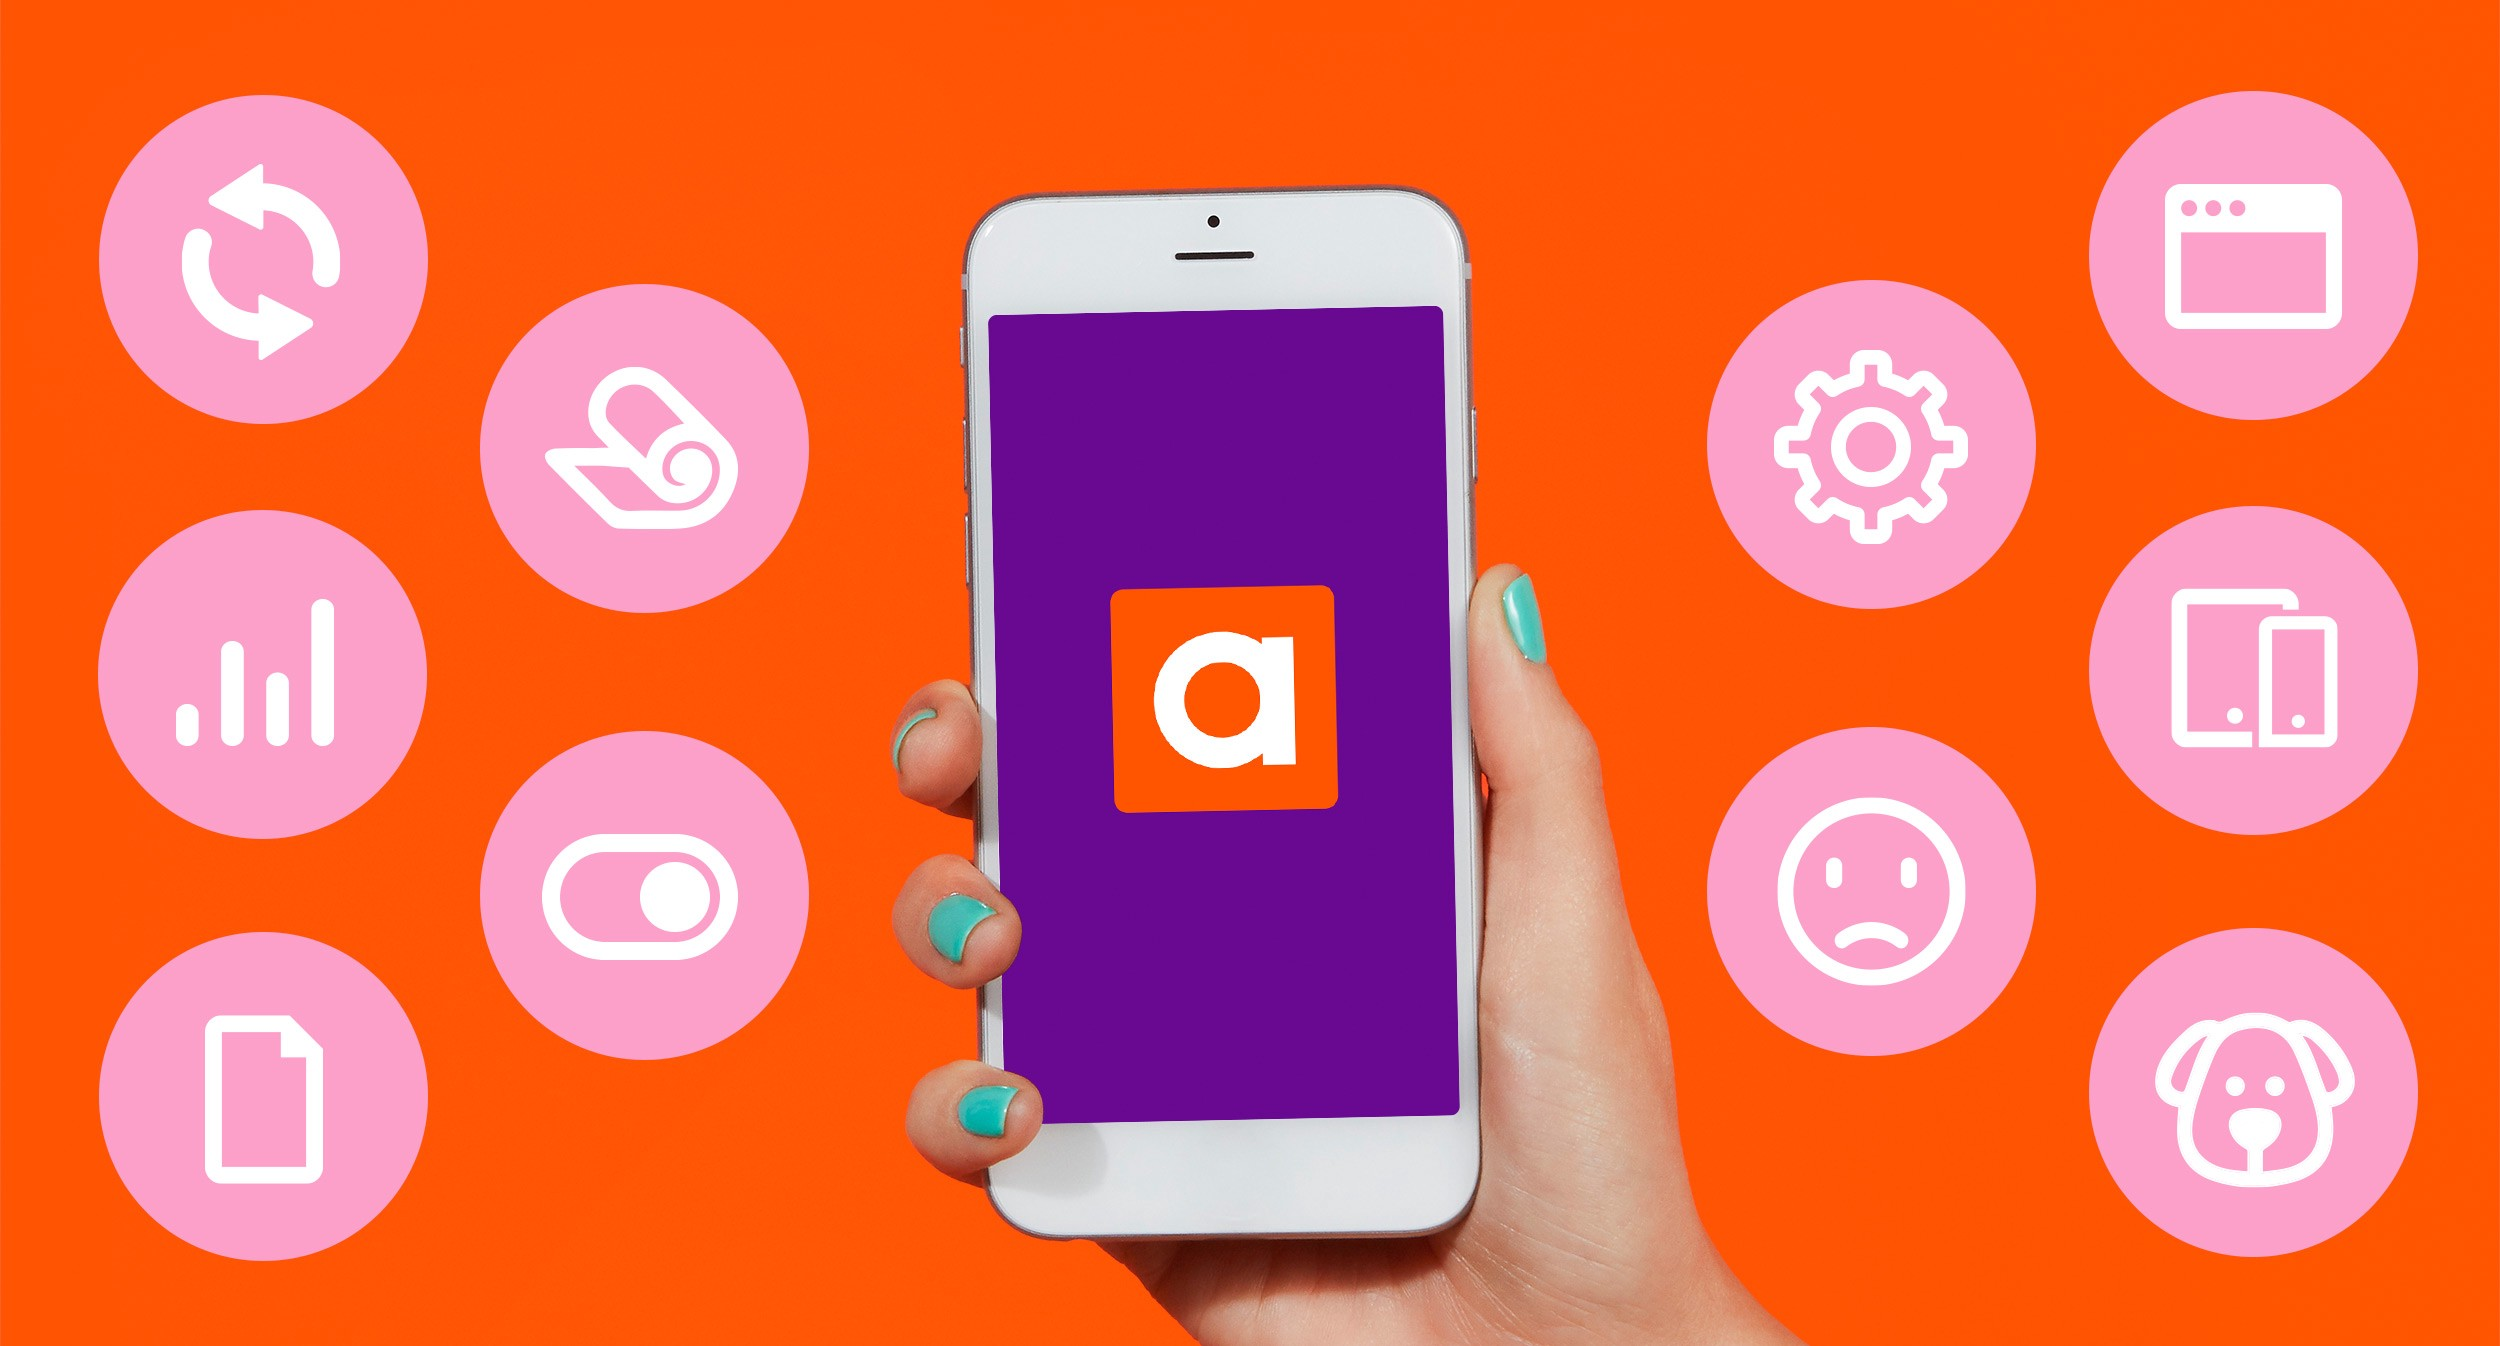 A Recent Study Has Shown That Approximately 21 Of Users Will Abandon An App After First Use Crashes Bugs Poor Performance Bad Ux And Lack Of